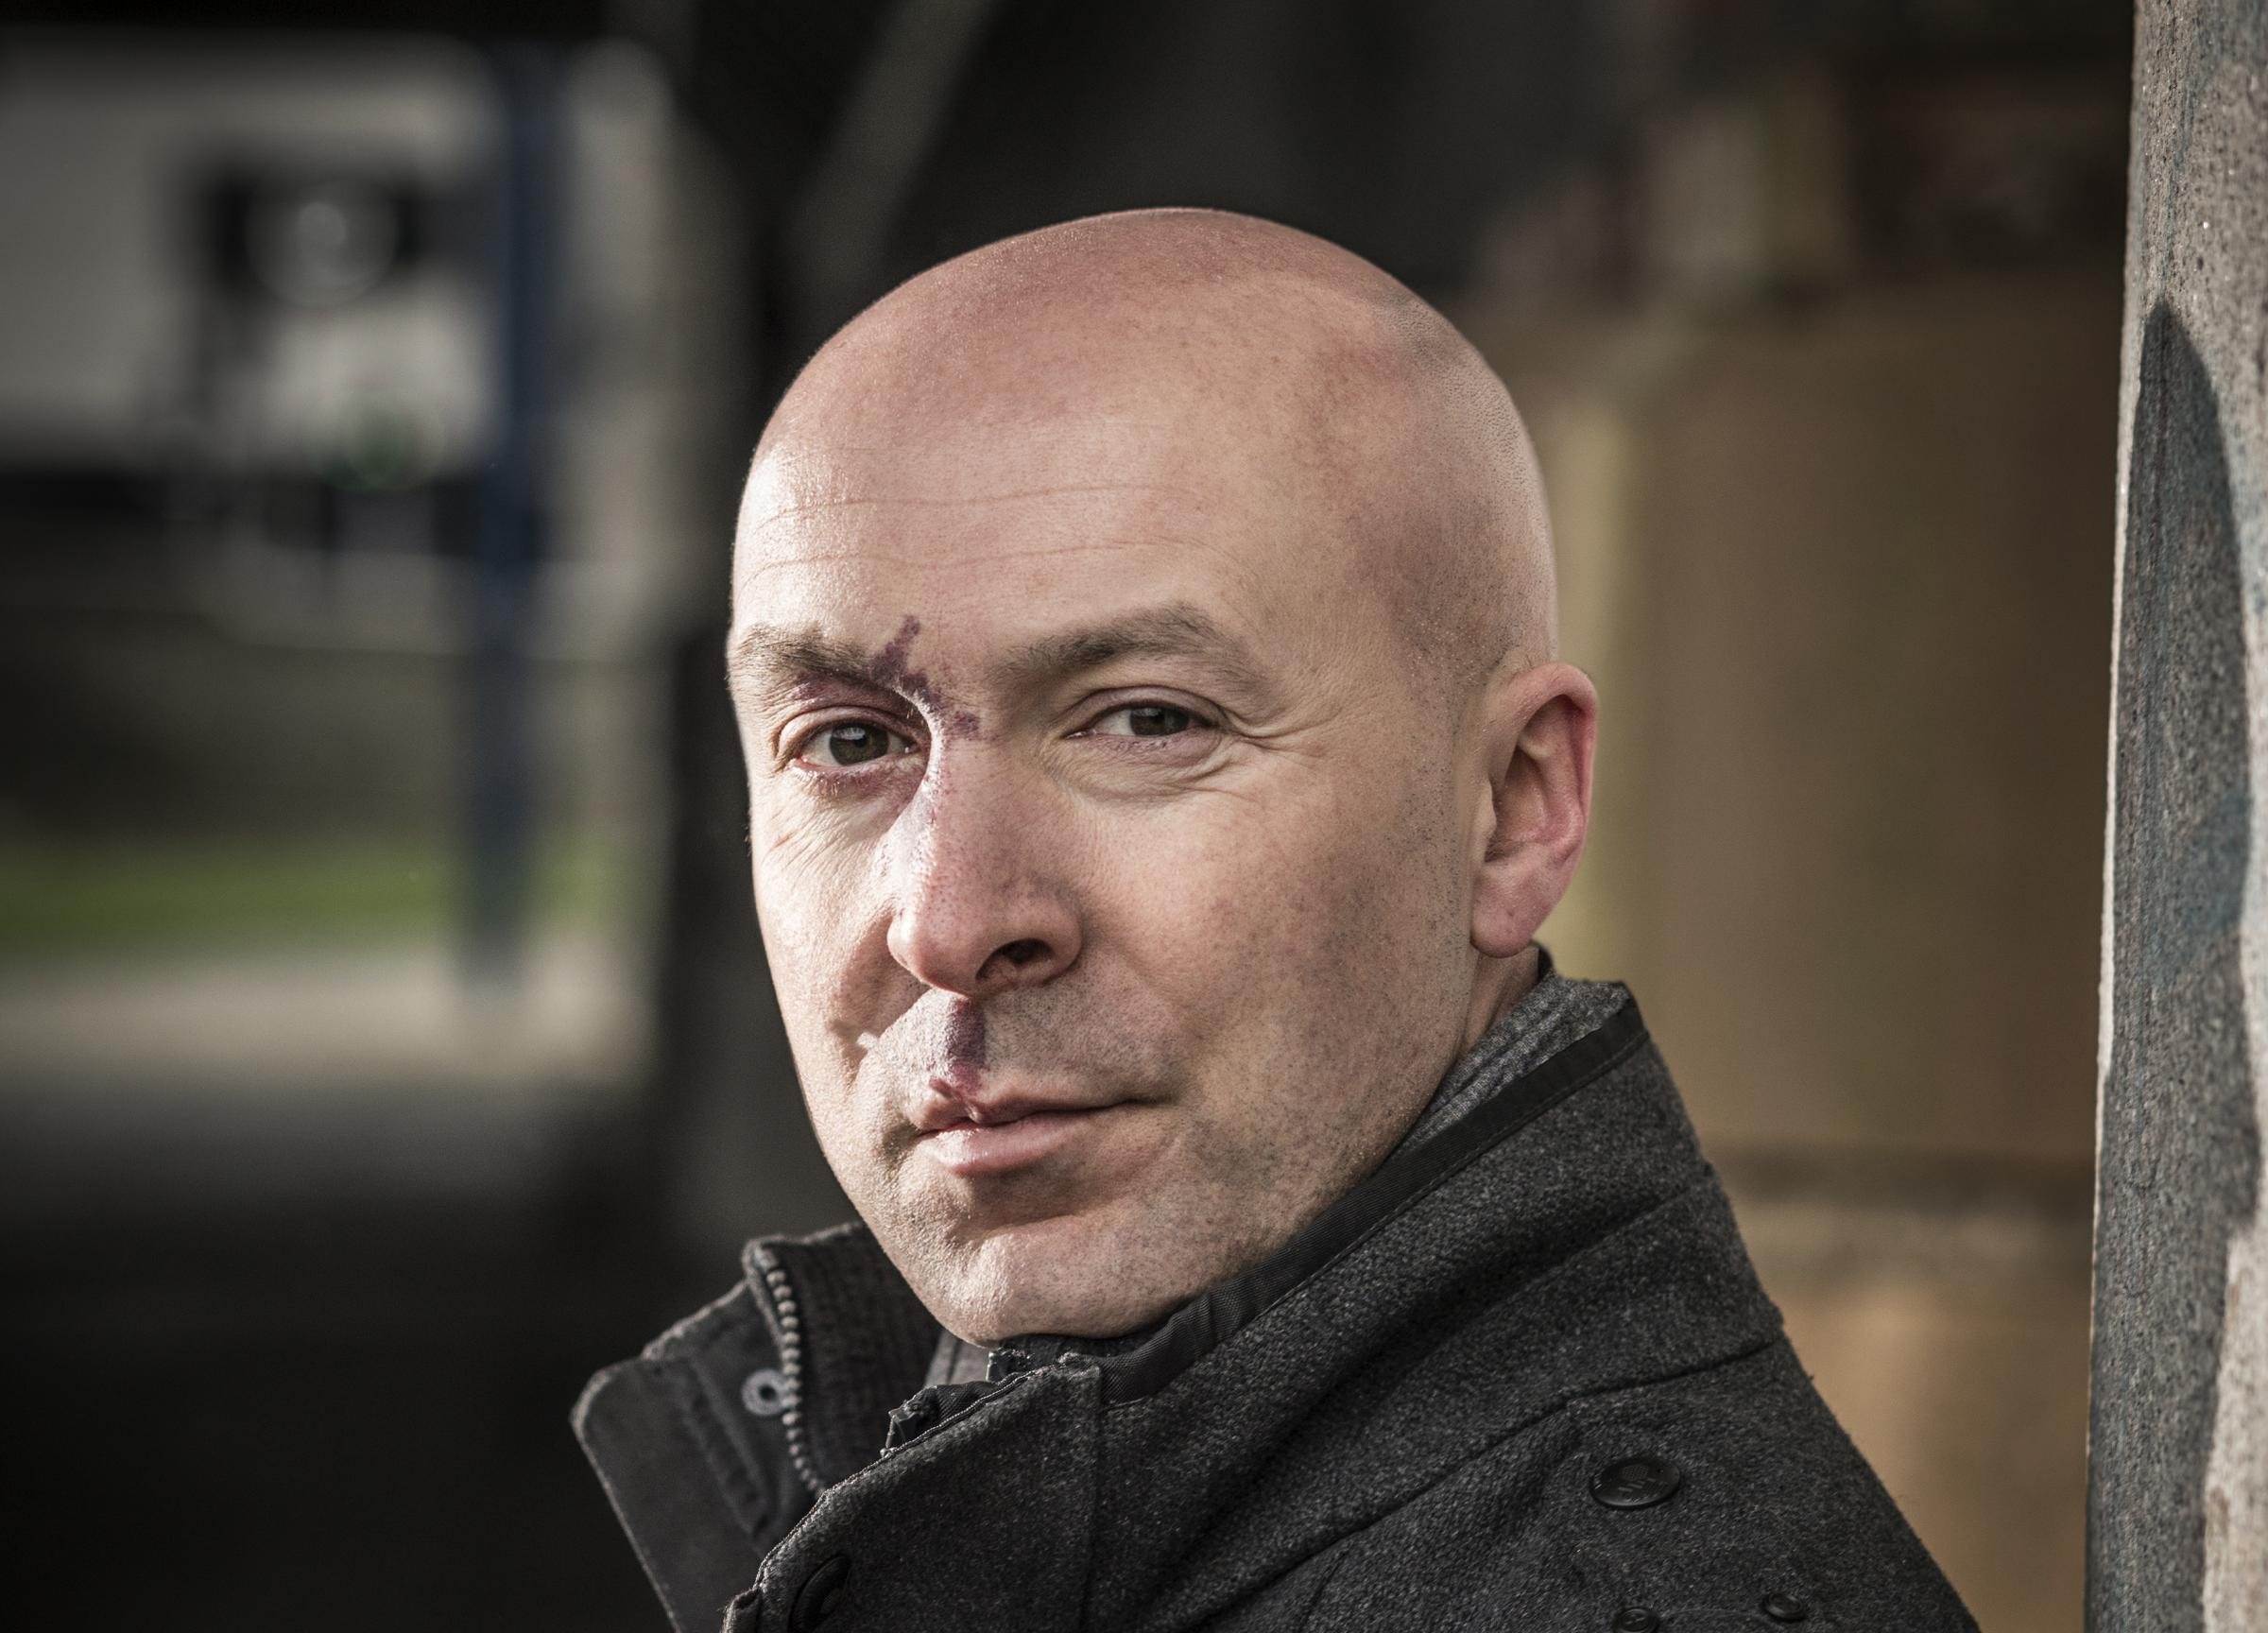 Christopher Brookmyre is delving into the world of computer hacking in his new novel